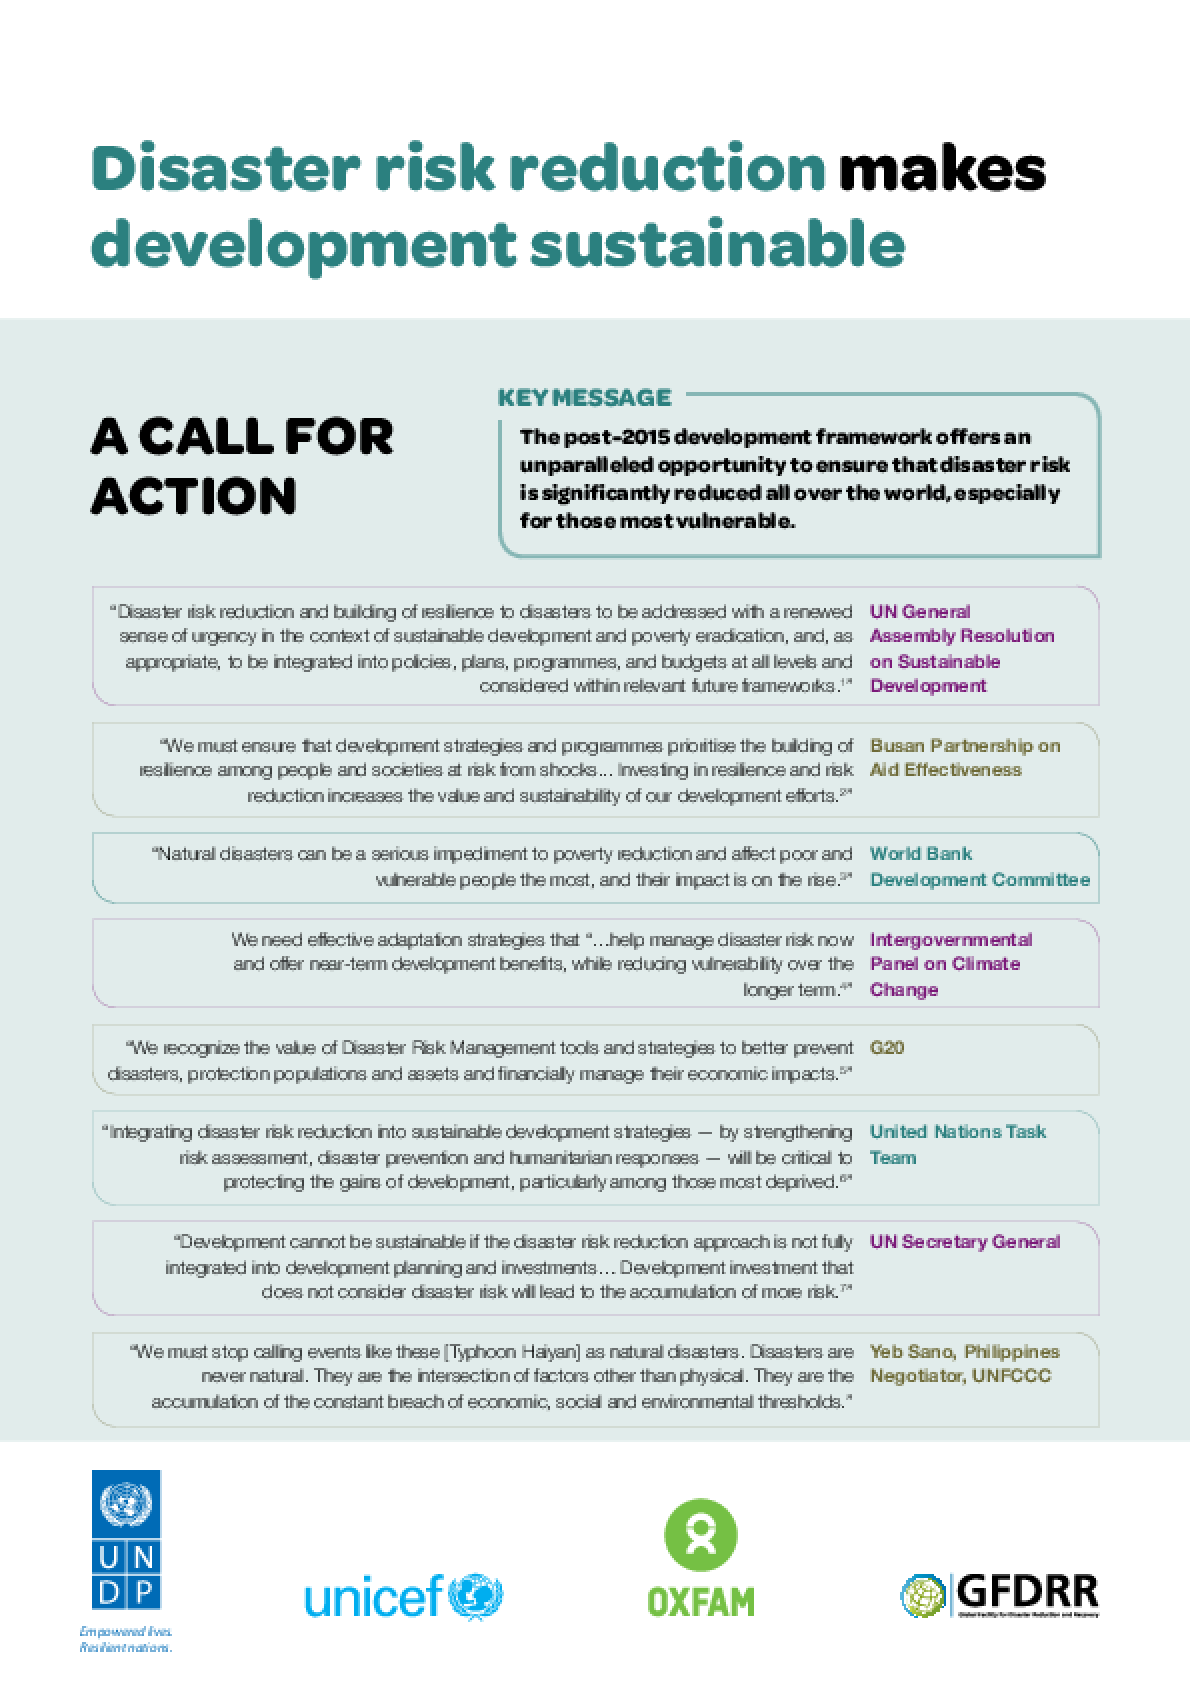 Disaster Risk Reduction Makes Development Sustainable